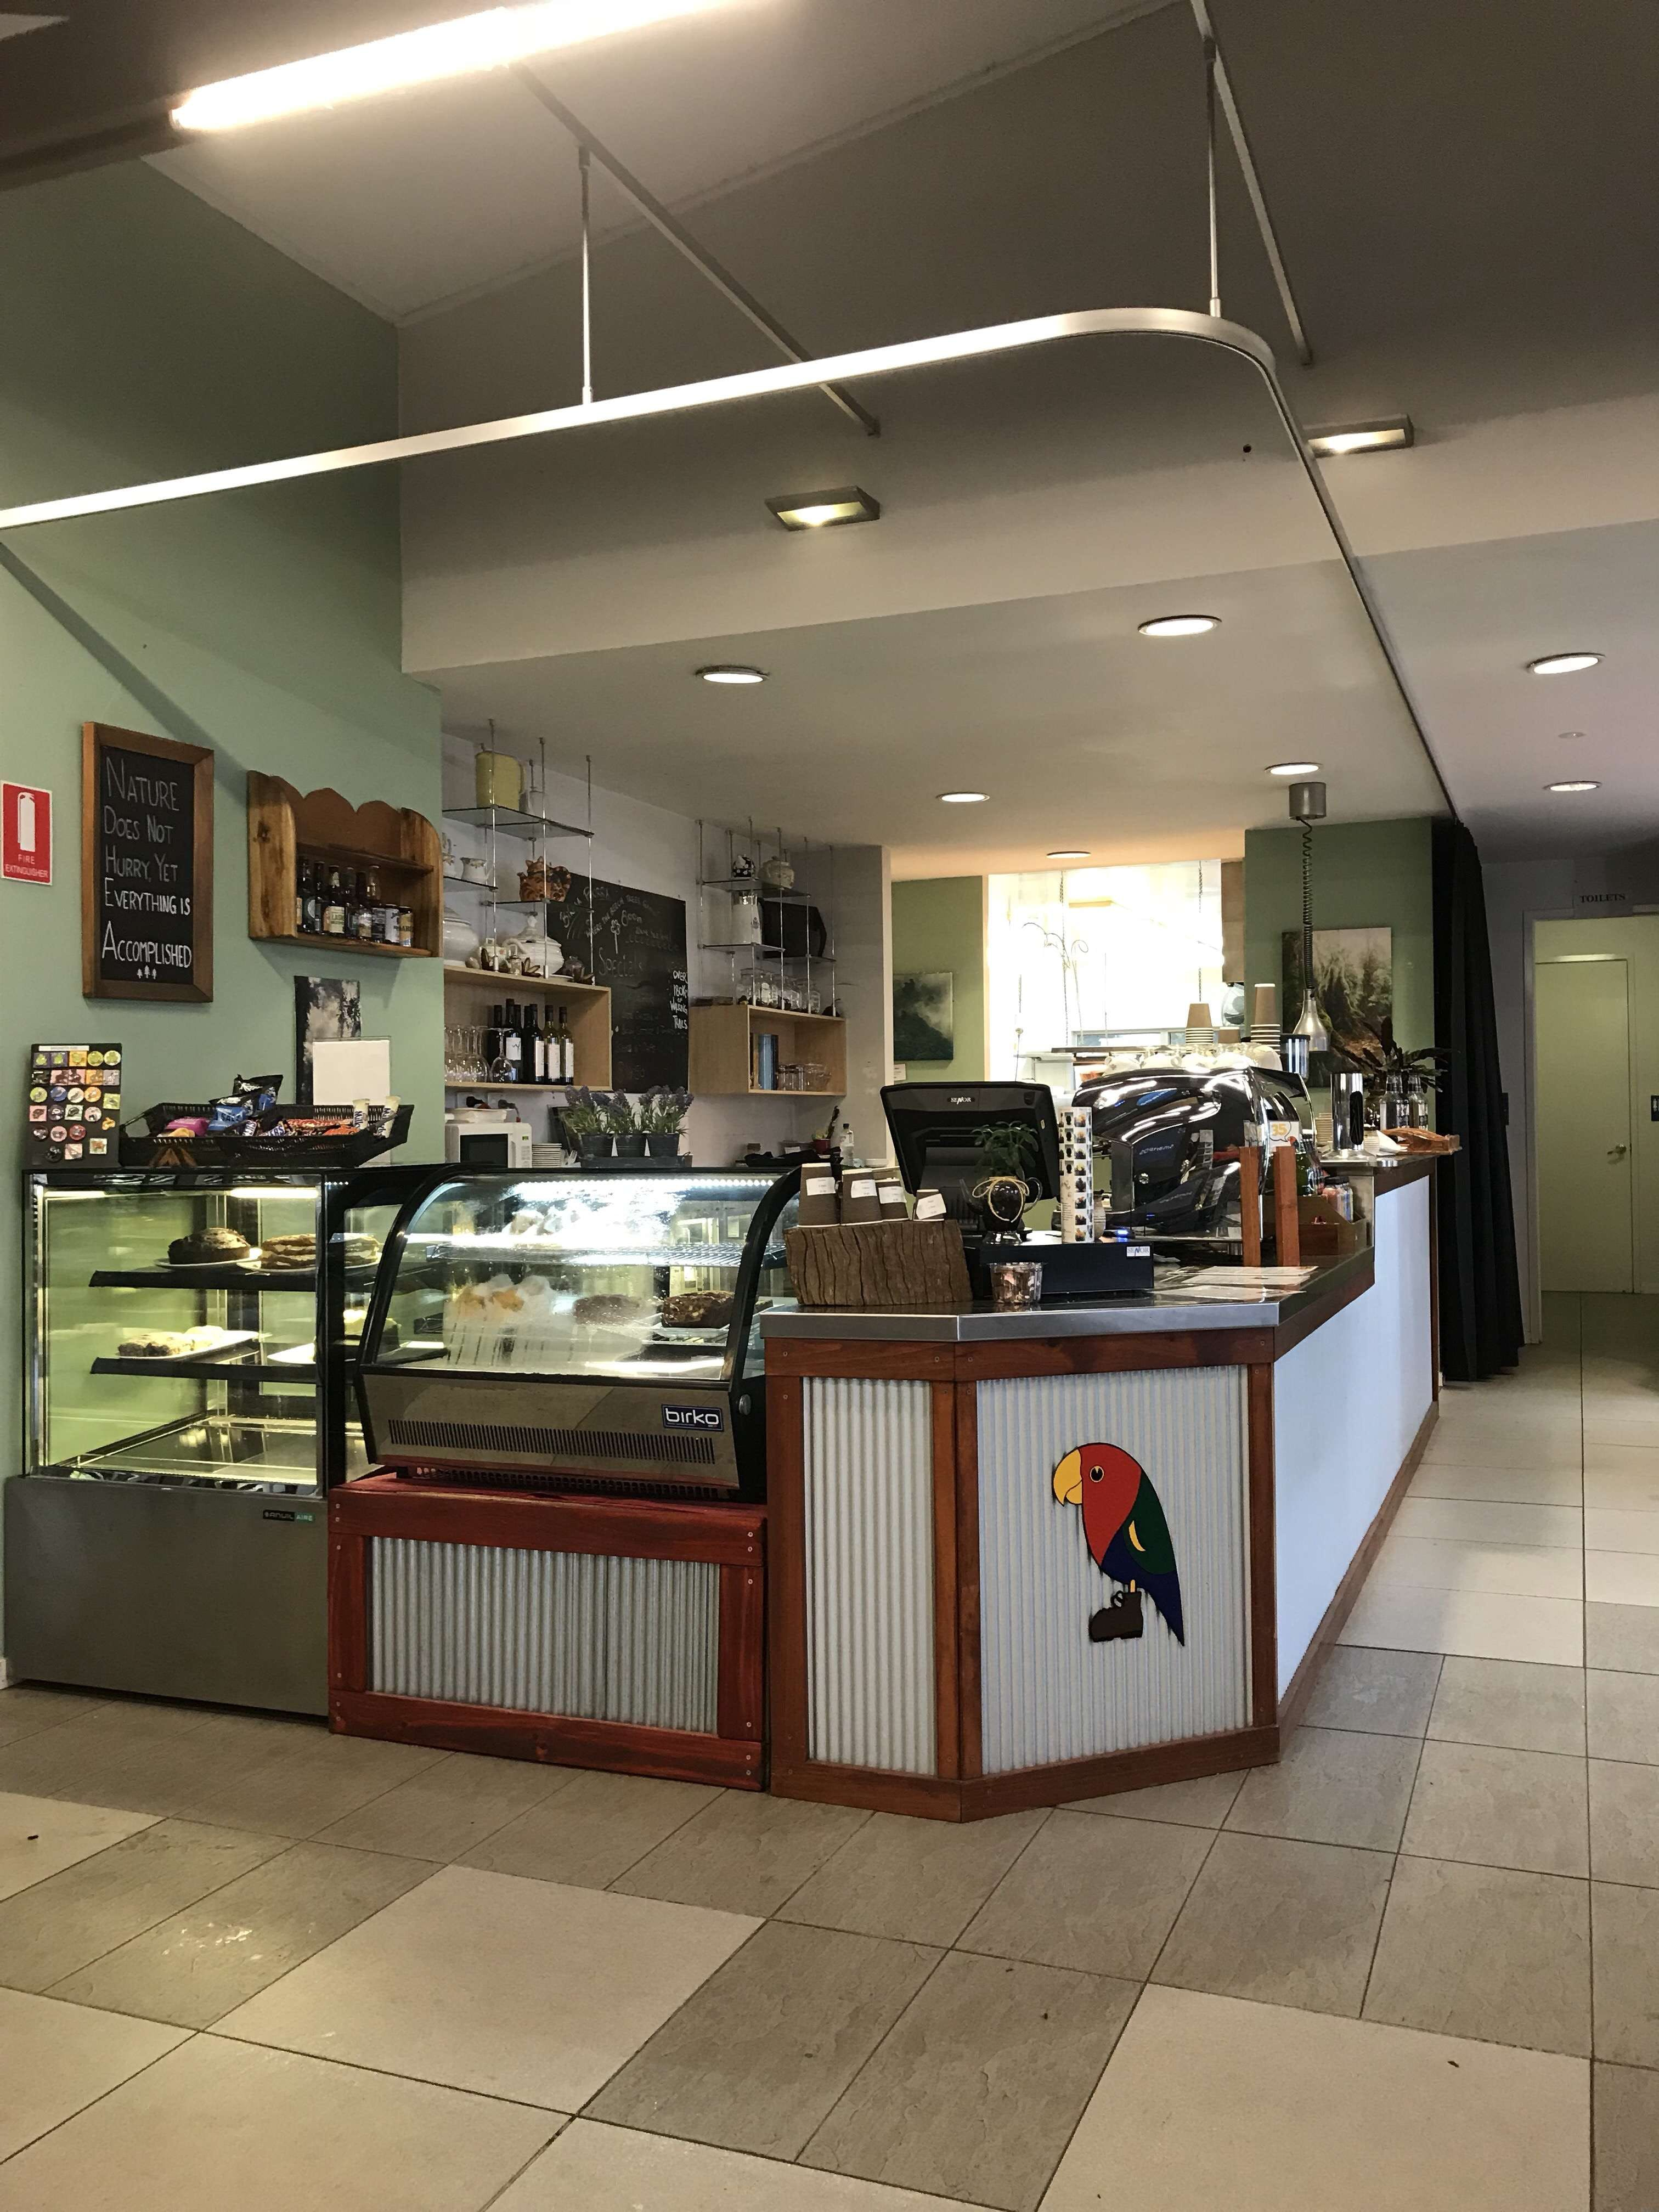 Lamington Teahouse - Accommodation in Surfers Paradise